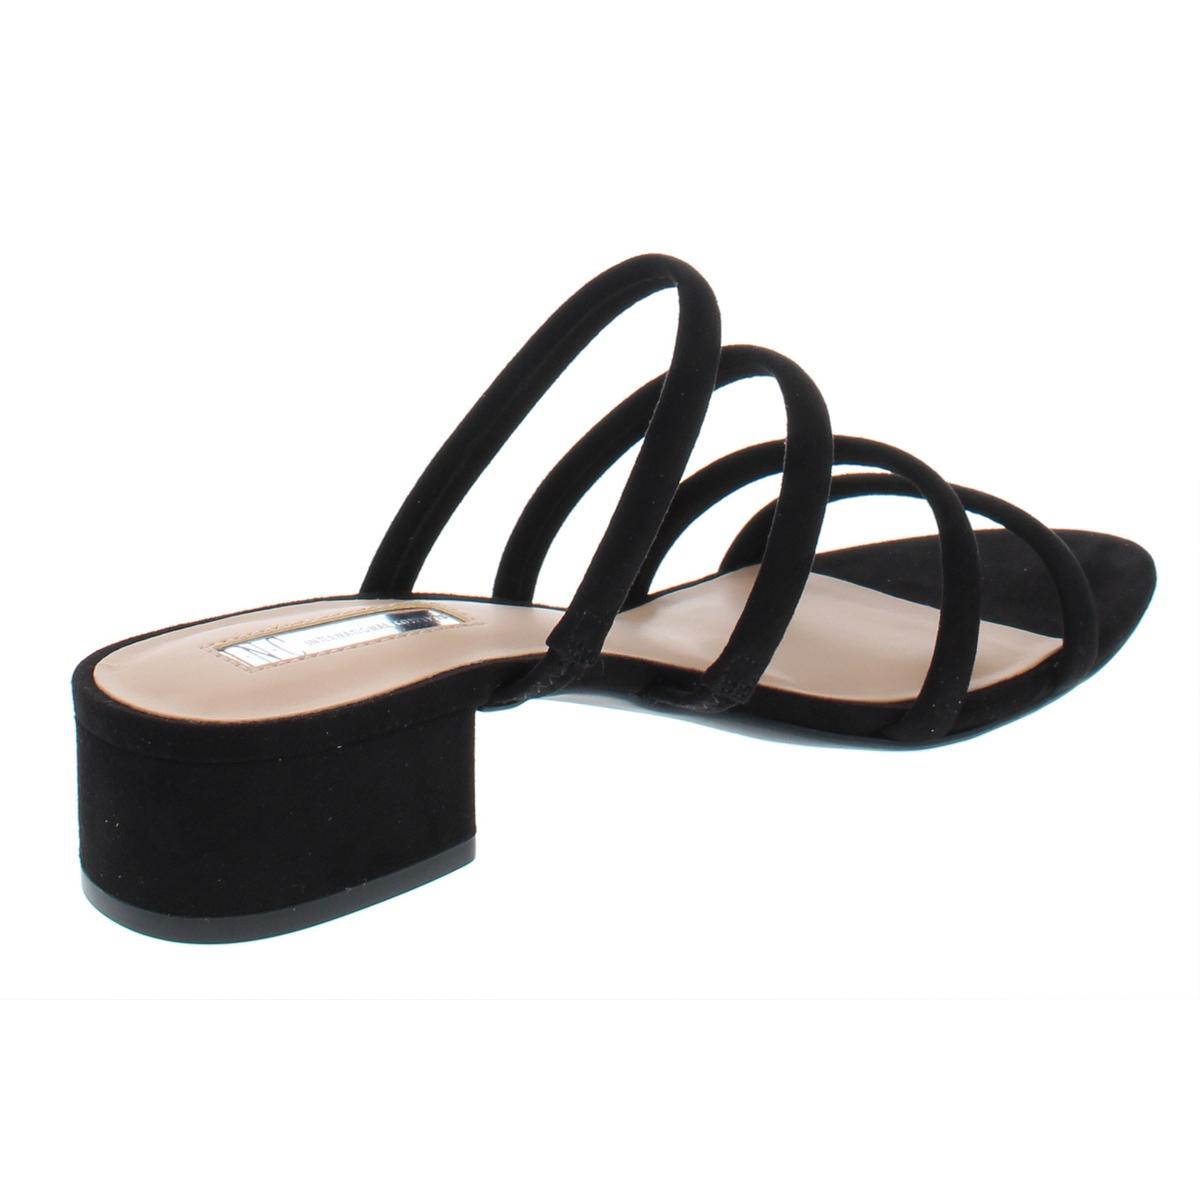 INC-Womens-Lamia-Strappy-Block-Heel-Open-Toe-Strappy-Sandals-Shoes-BHFO-6438 thumbnail 4